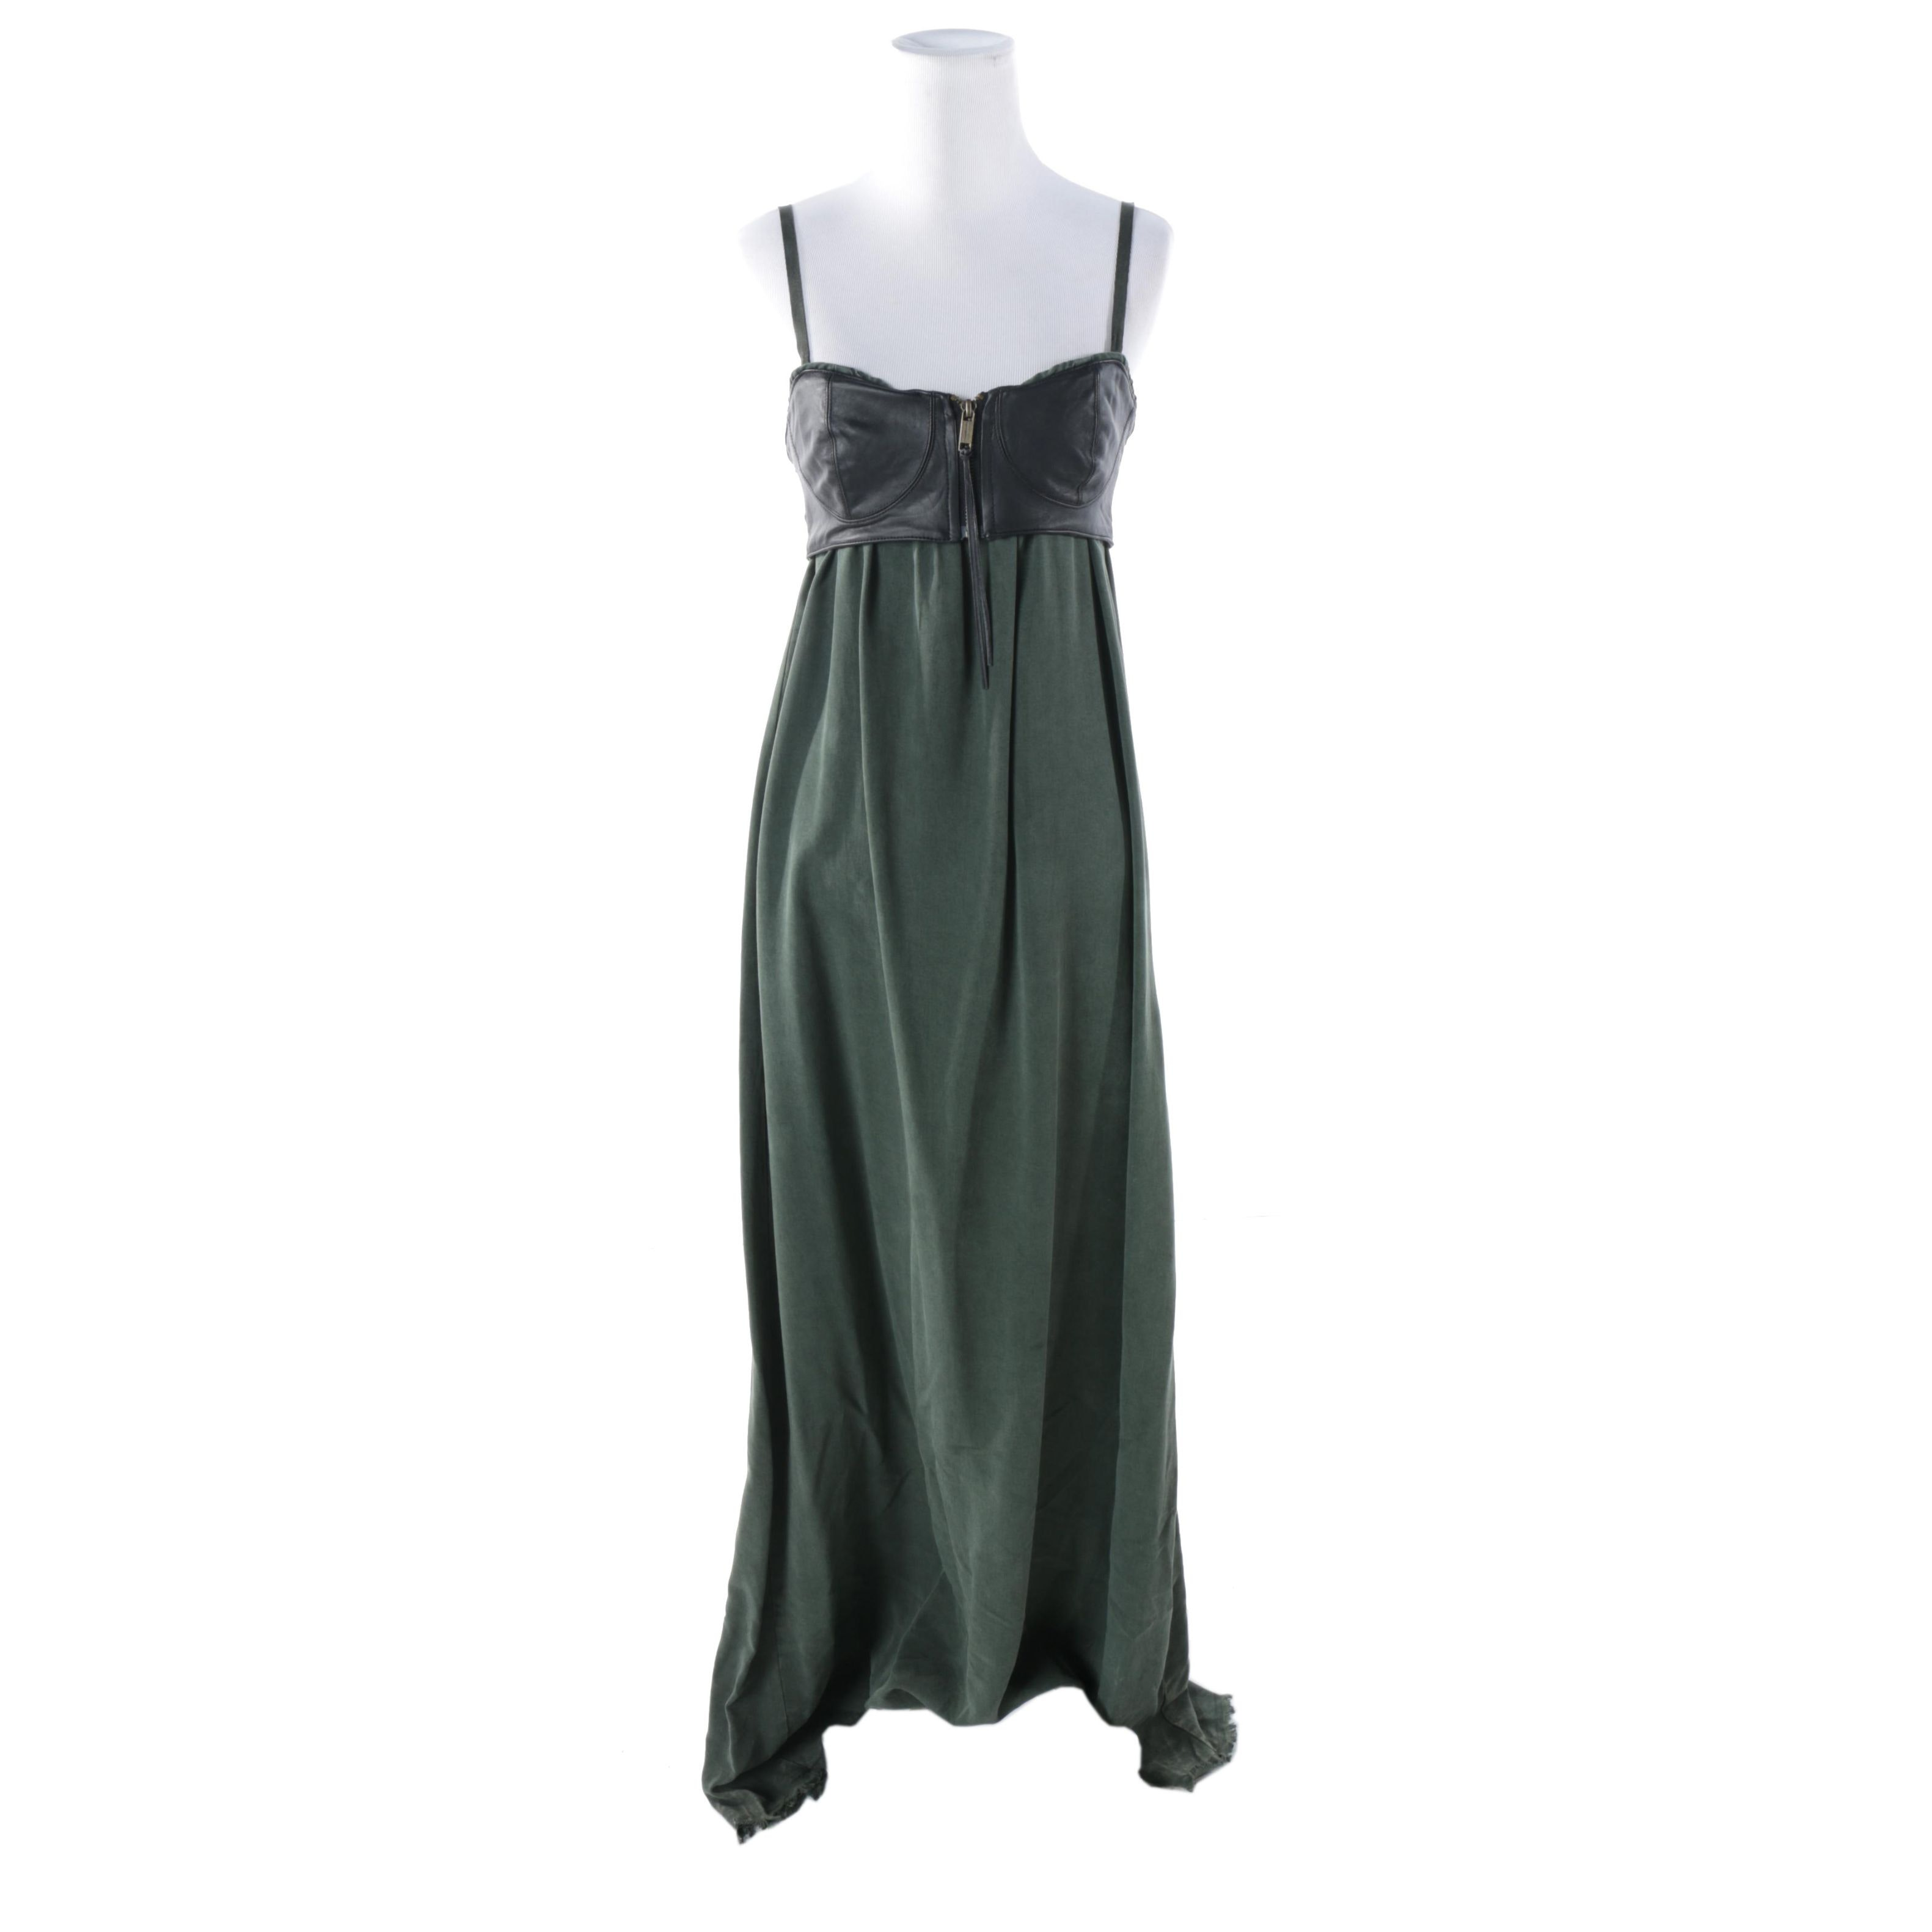 Diesel Black Lambskin Leather Accented Green Maxi Dress